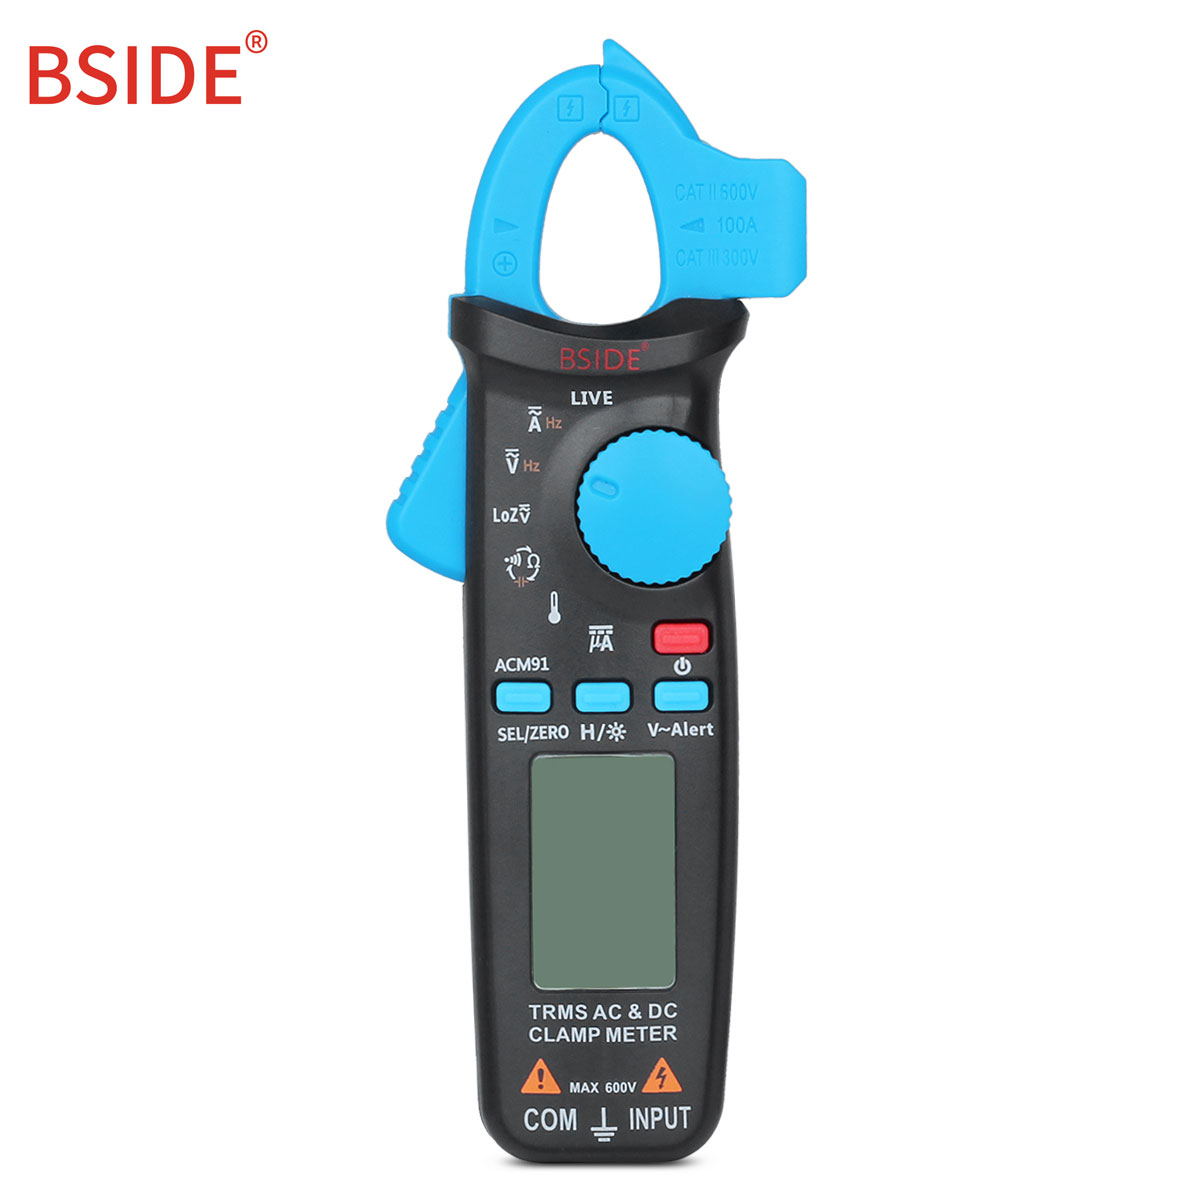 BSIDE ACM91 Digital Multimeter Auto Range Current Clamp Ammeter AC DC Voltmeter Tester Clamp Meter Portable Meter Home TesterBSIDE ACM91 Digital Multimeter Auto Range Current Clamp Ammeter AC DC Voltmeter Tester Clamp Meter Portable Meter Home Tester